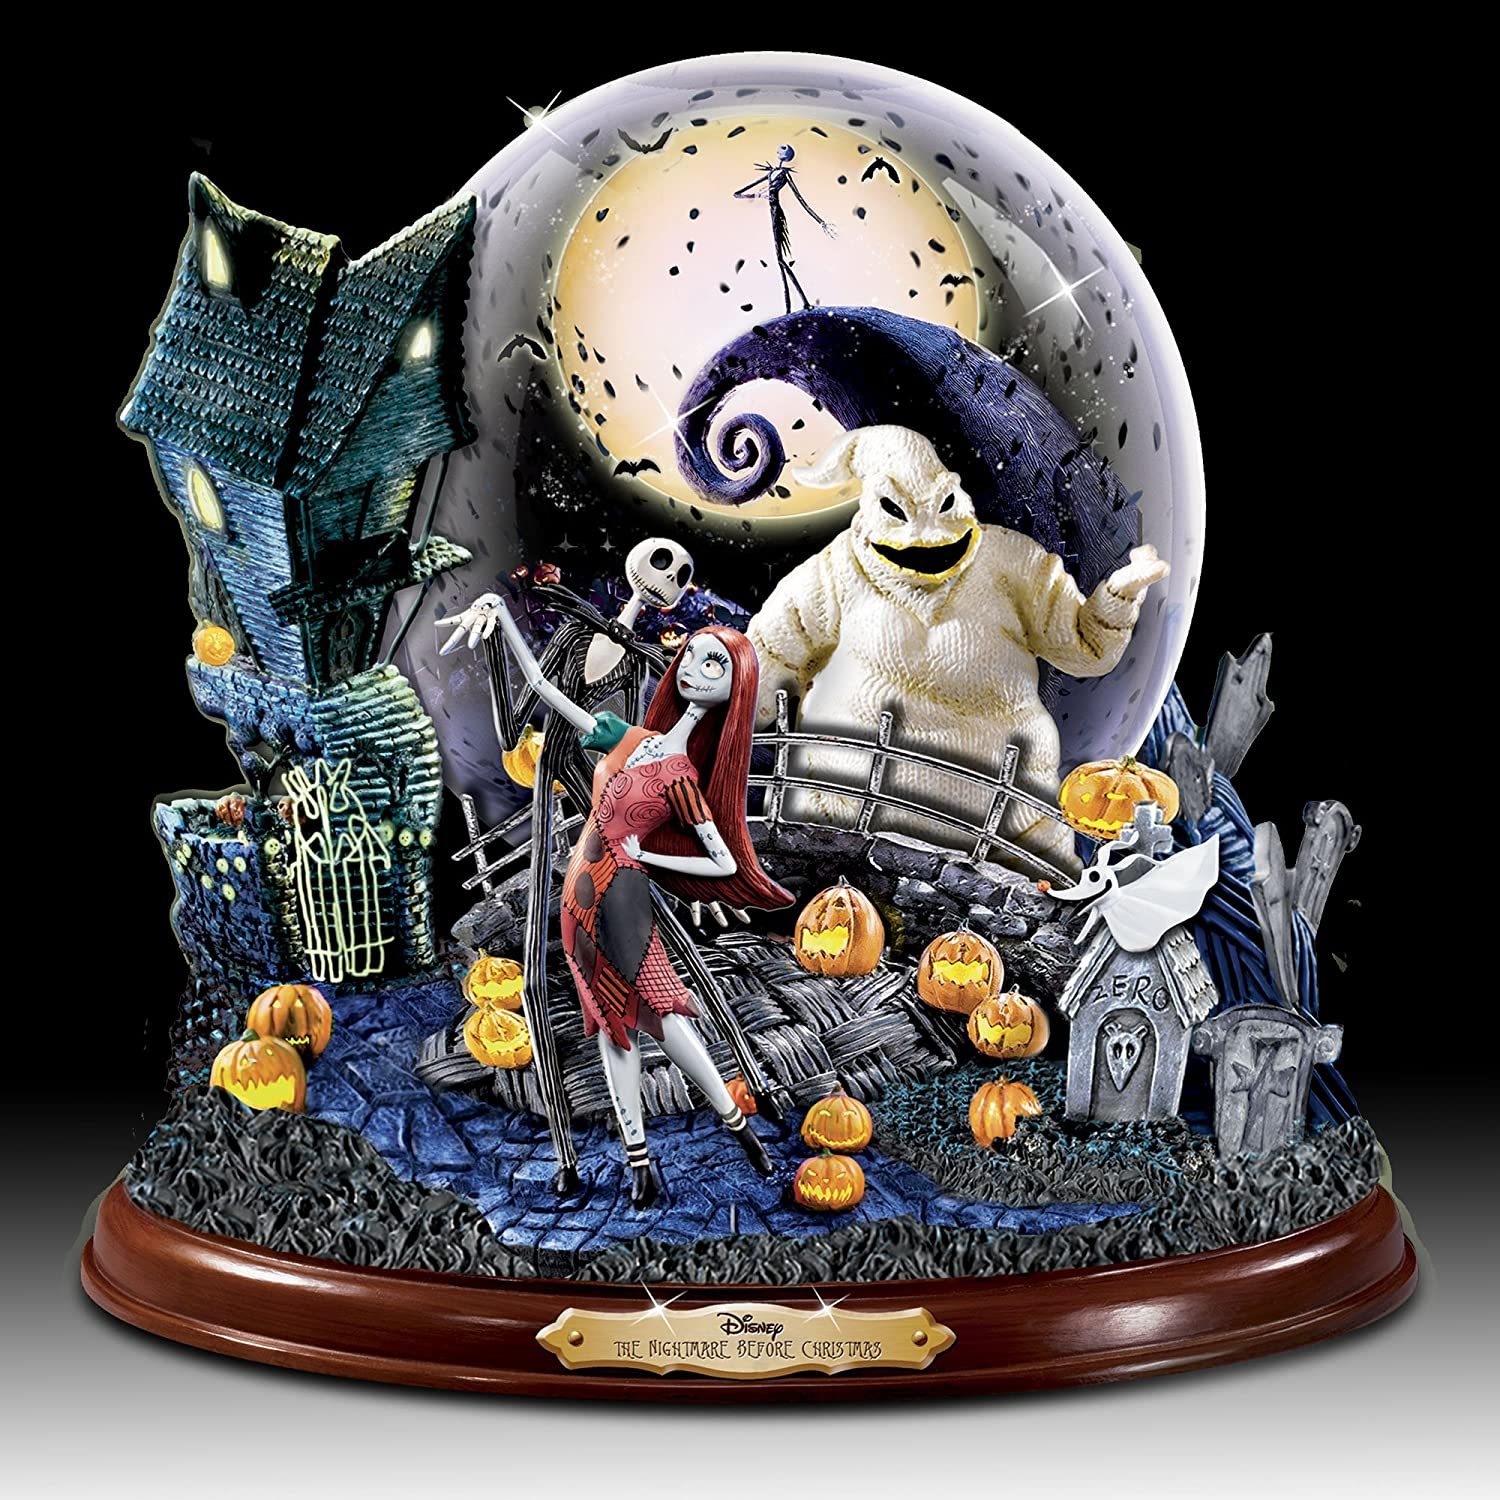 the bradford exchange nightmare before christmas illuminated snowglobe with village scene plays this is halloween